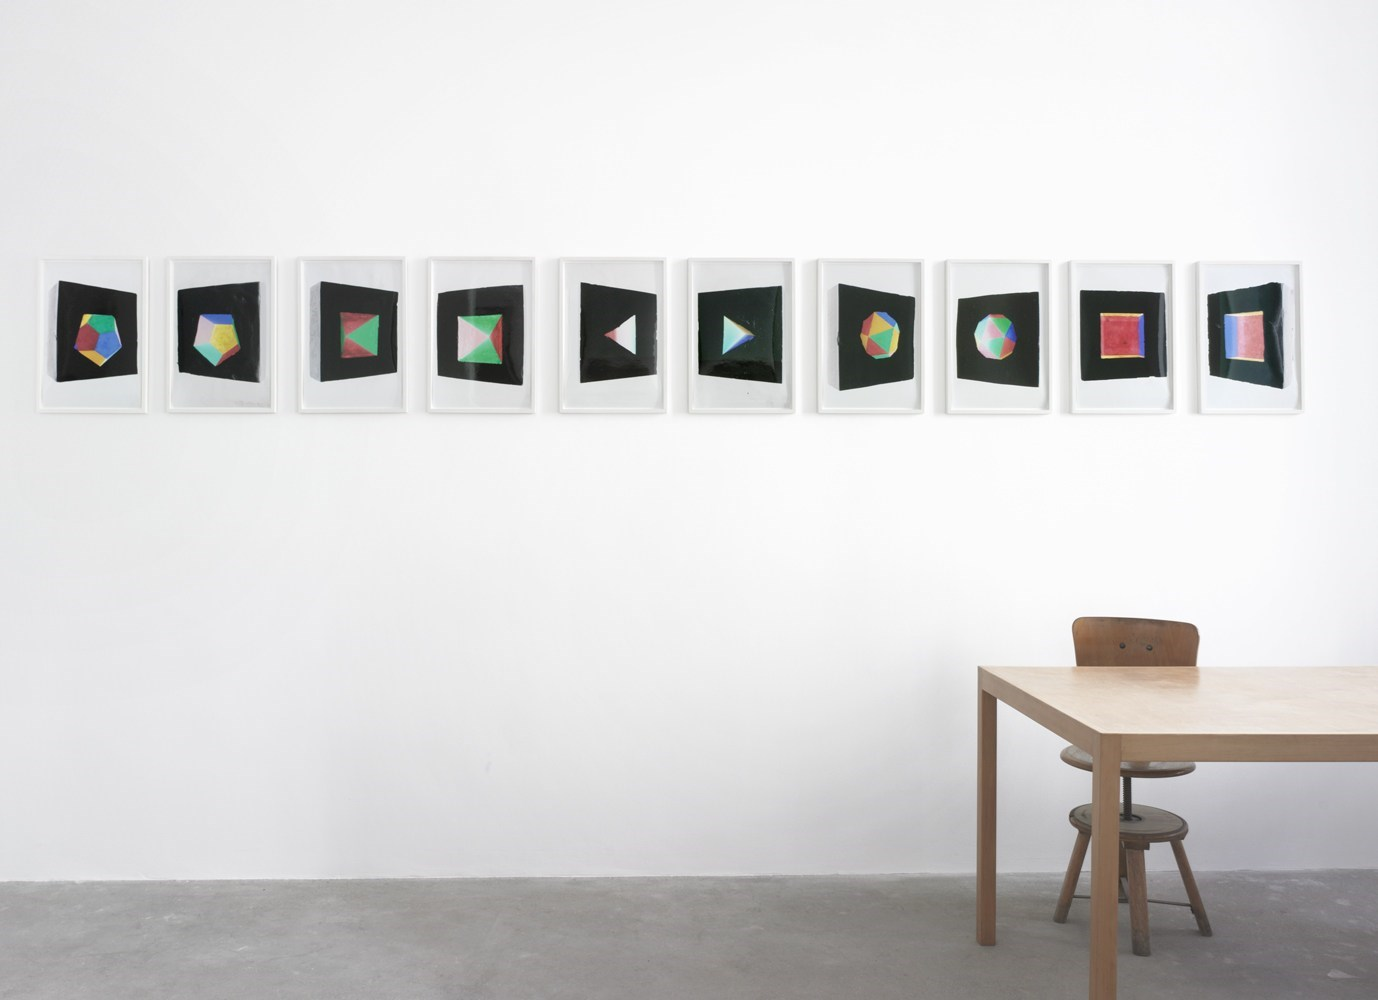 Platonische Körper, 45cm x 30cm each, series of 5 x 2 C-prints, 2012<br />Installation view Sassa Trülzsch, Berlin